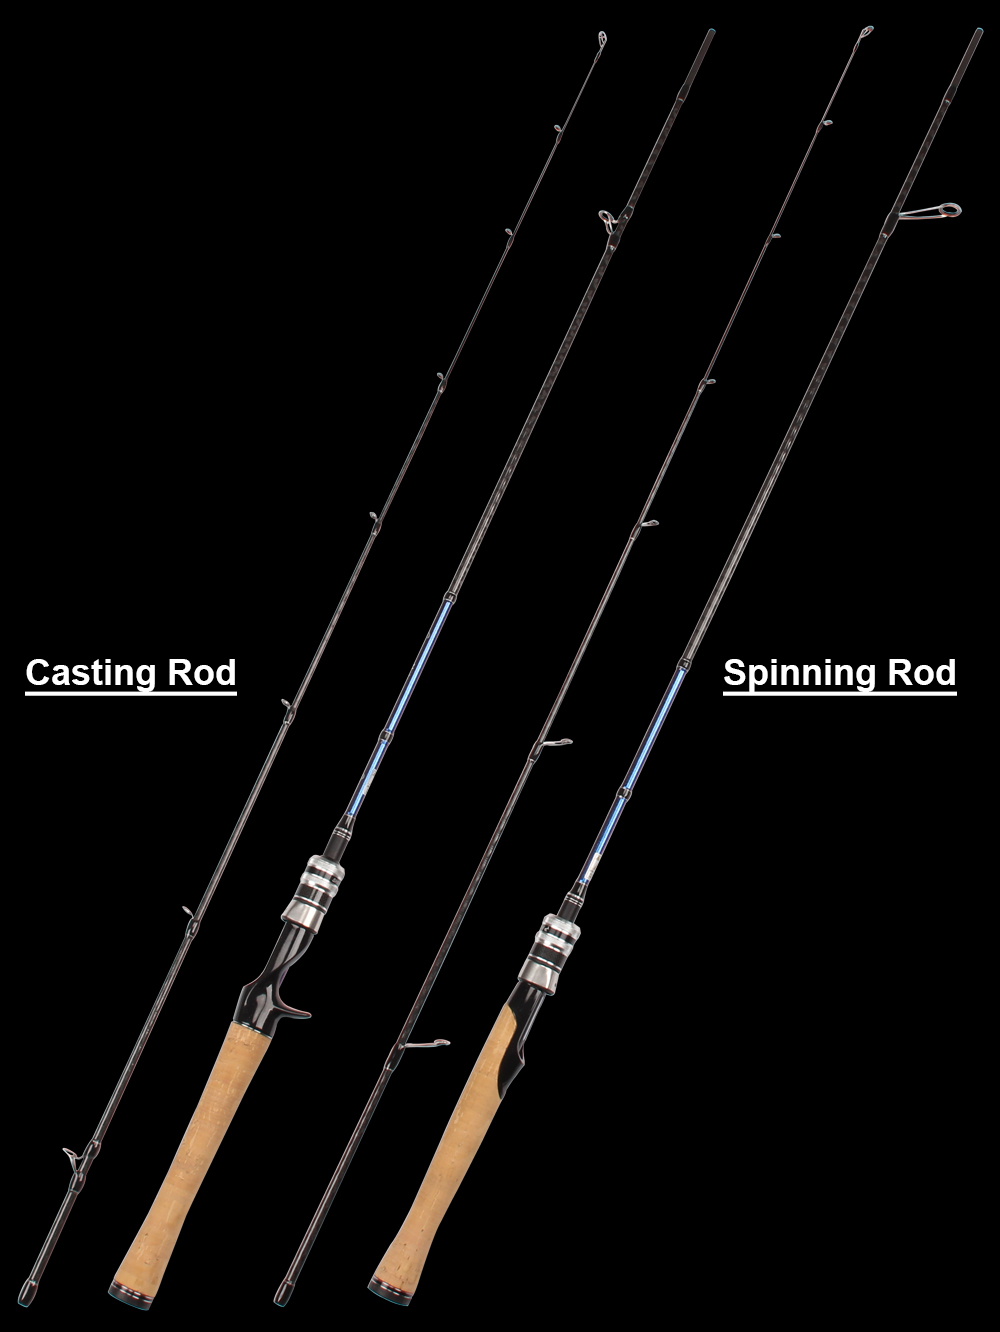 High Quality 1.89m Solid Tip Stream Fishing Rod F Action, L Power, 2-8g Lure Weight Discolor Painting Spinning Casting Rod  (9)